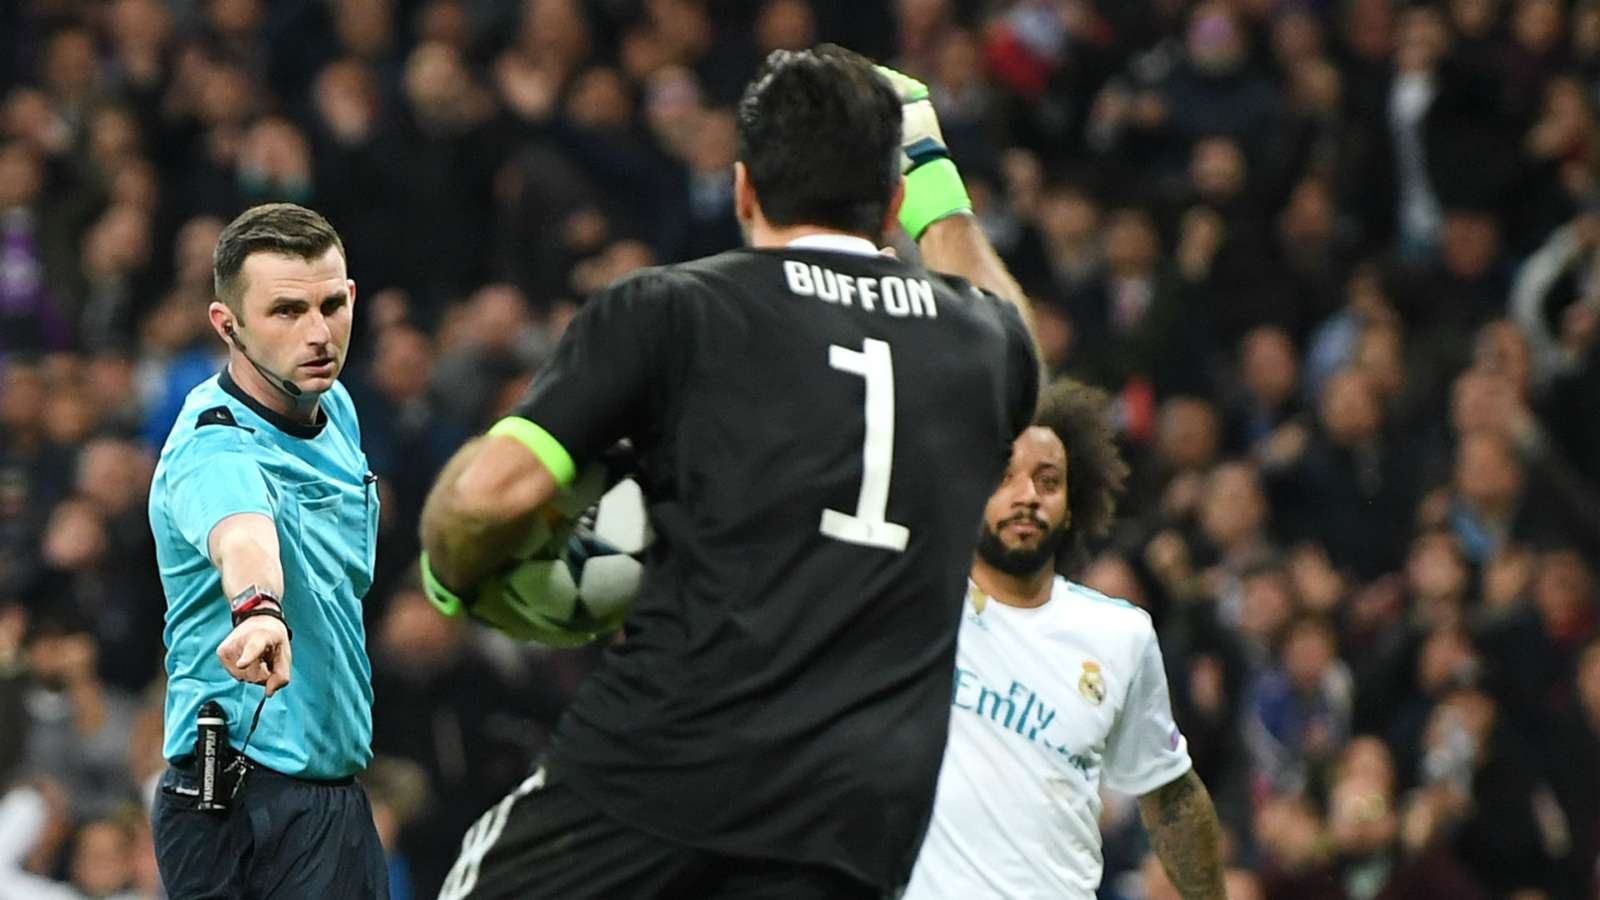 Buffon comments on the possibility of meeting Real Madrid with the champions